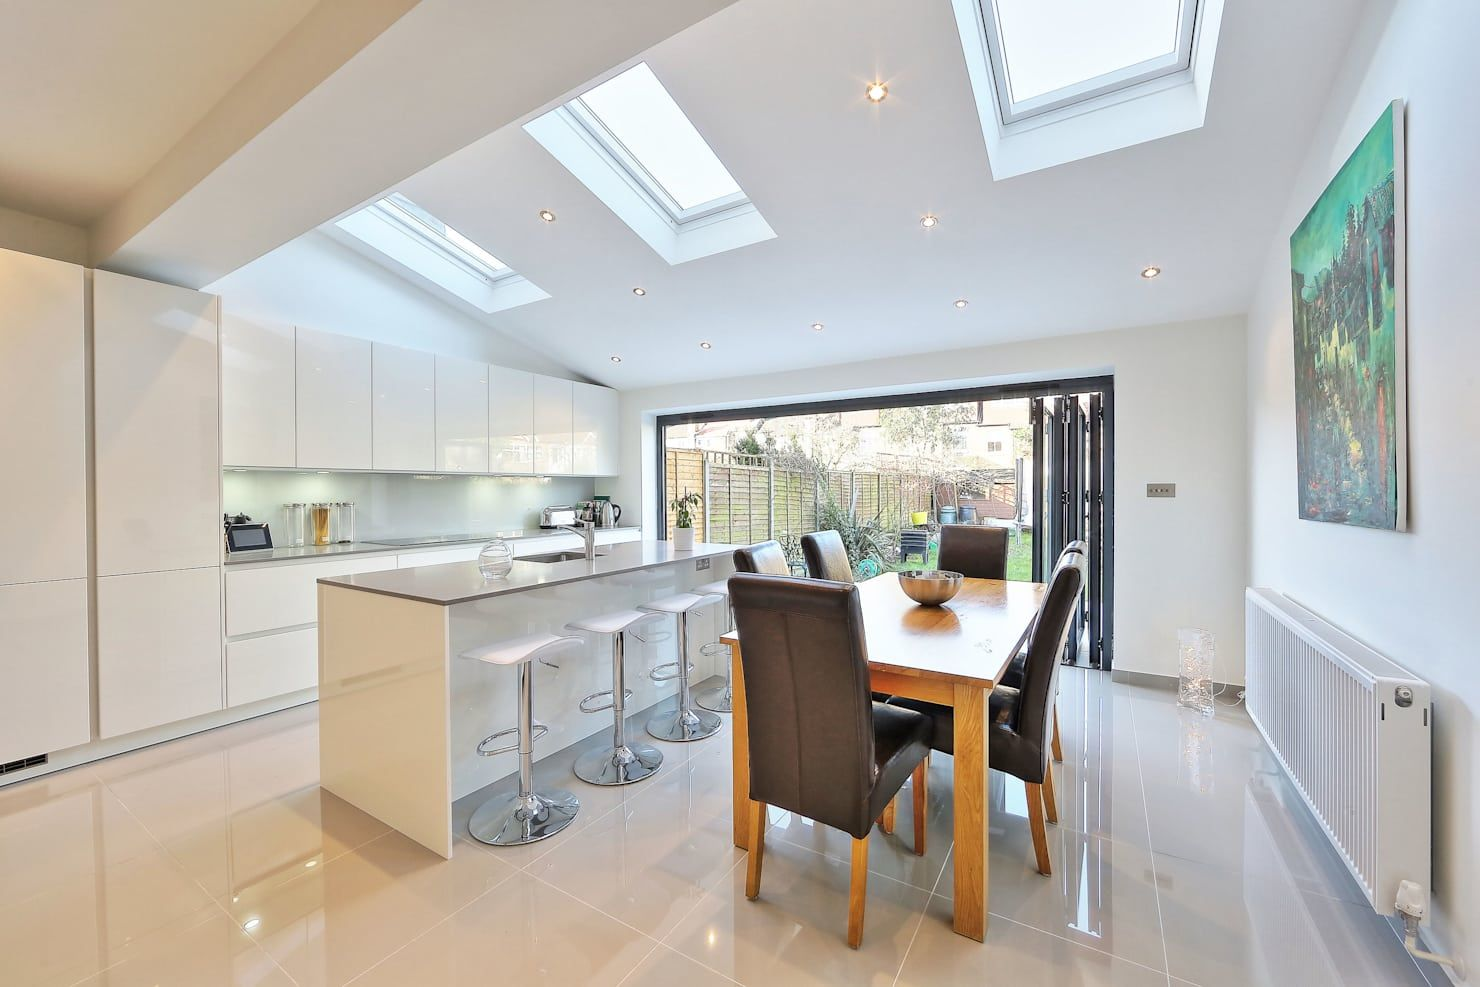 London kitchen extension ideas for family homes | homify